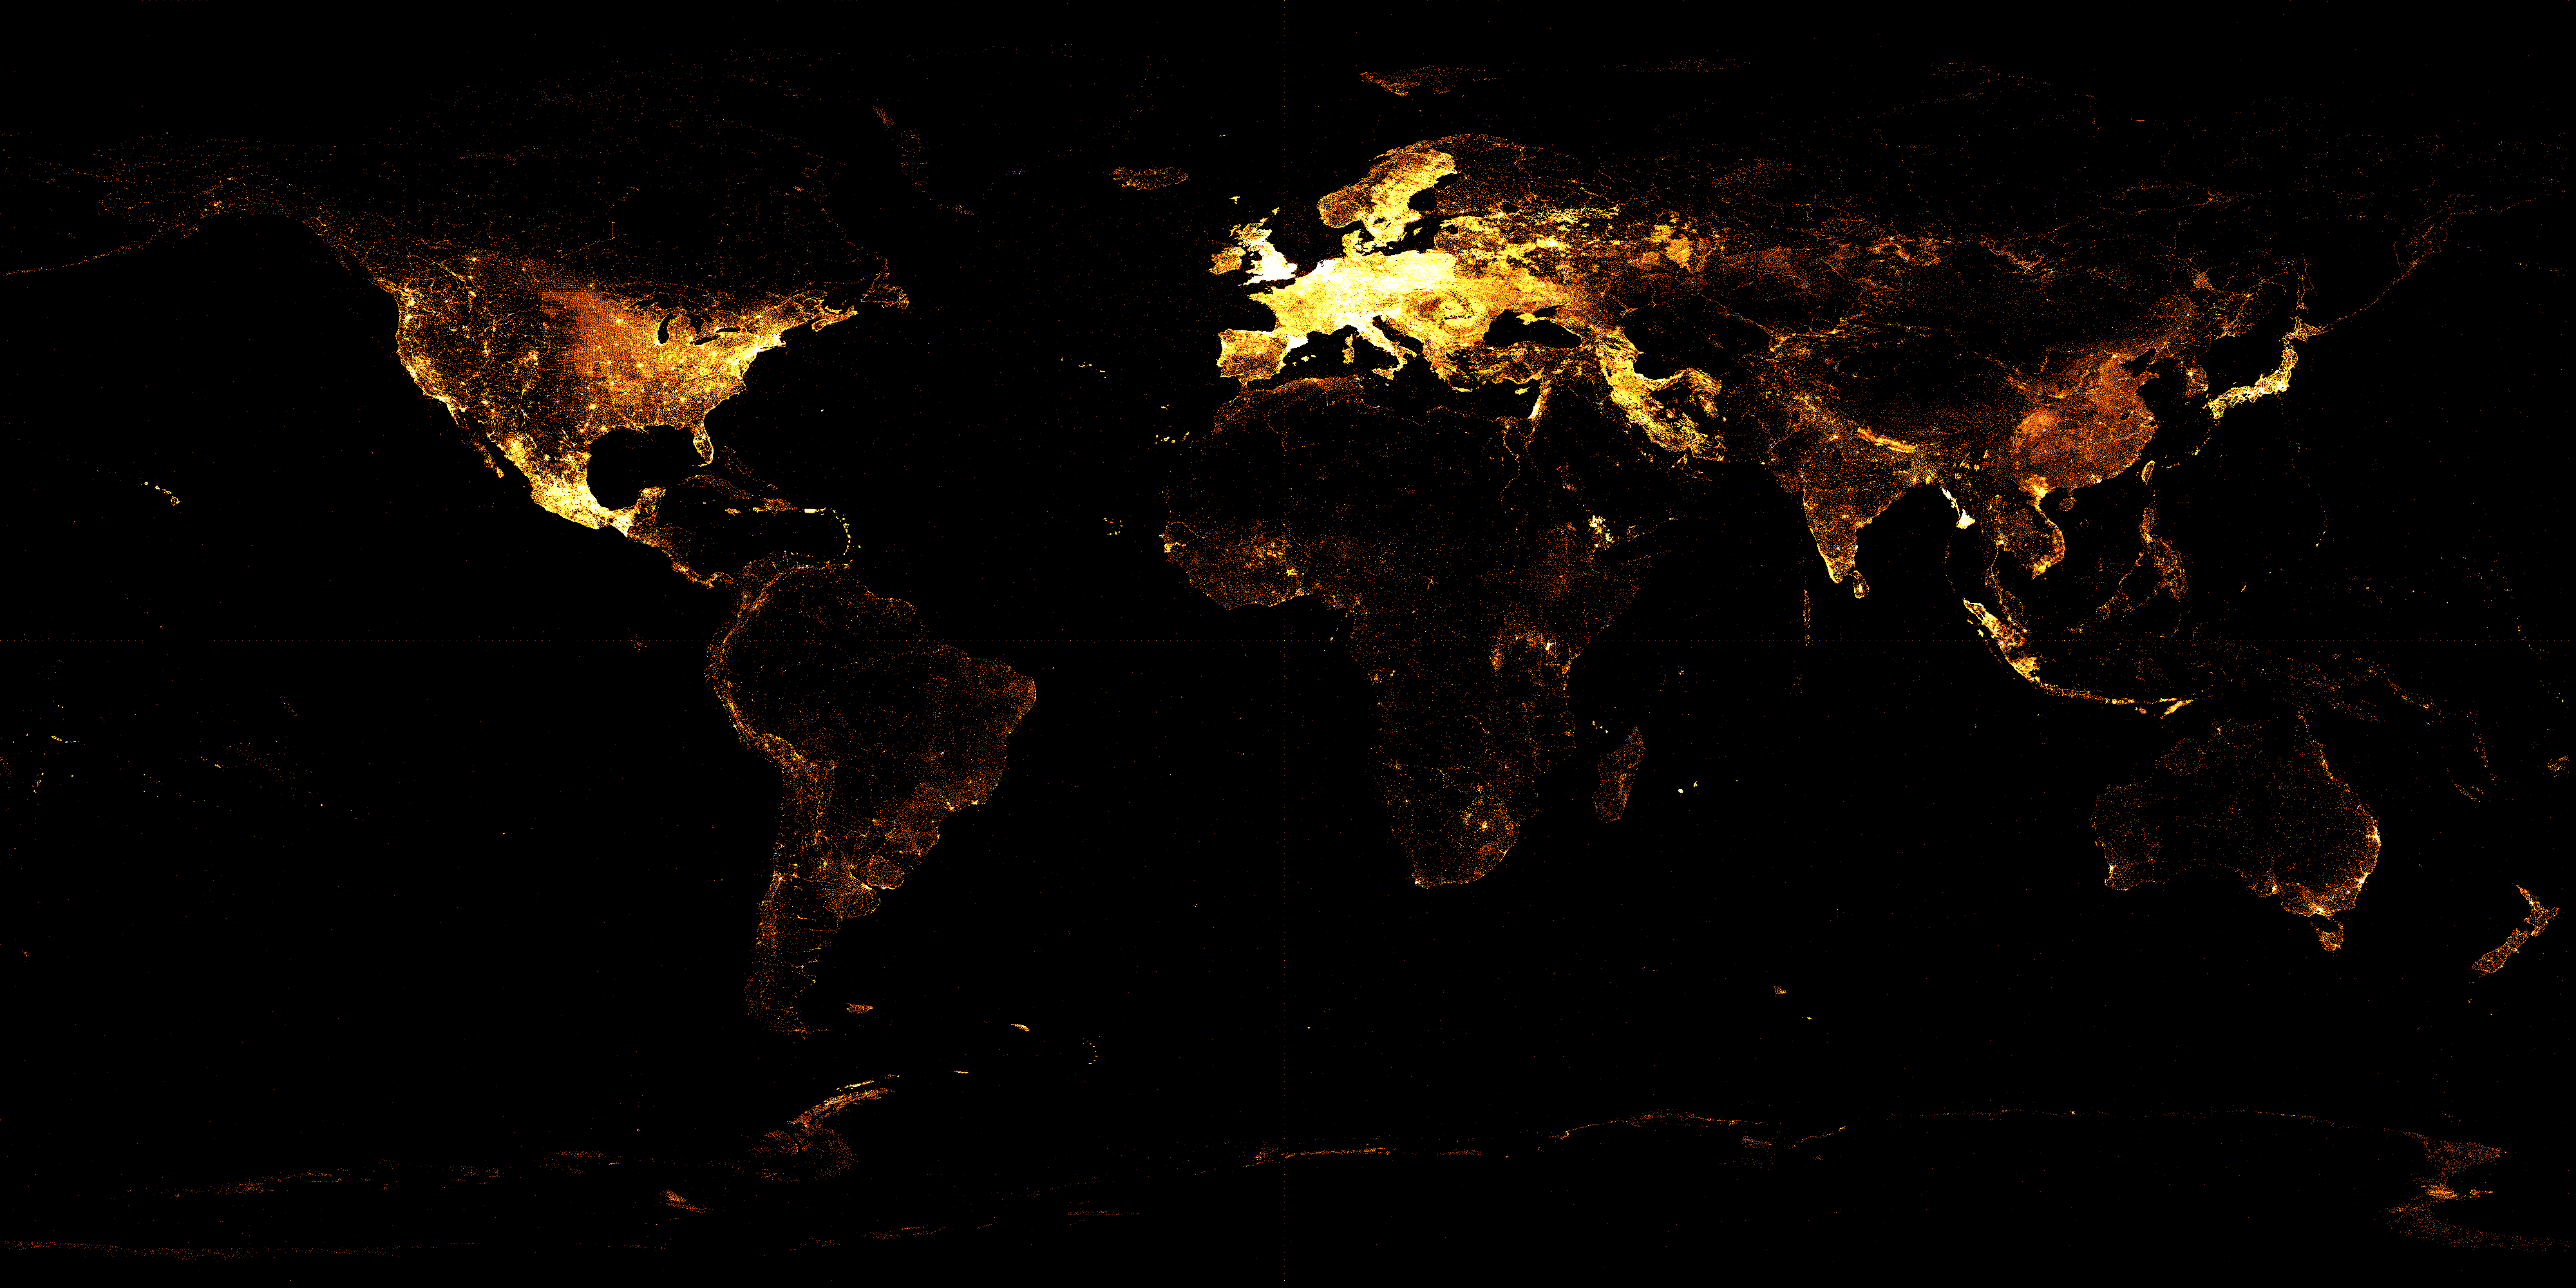 https://commons.wikimedia.org/wiki/File:Wikidata_Map_October_2015_Big.png, Addshore, CC0